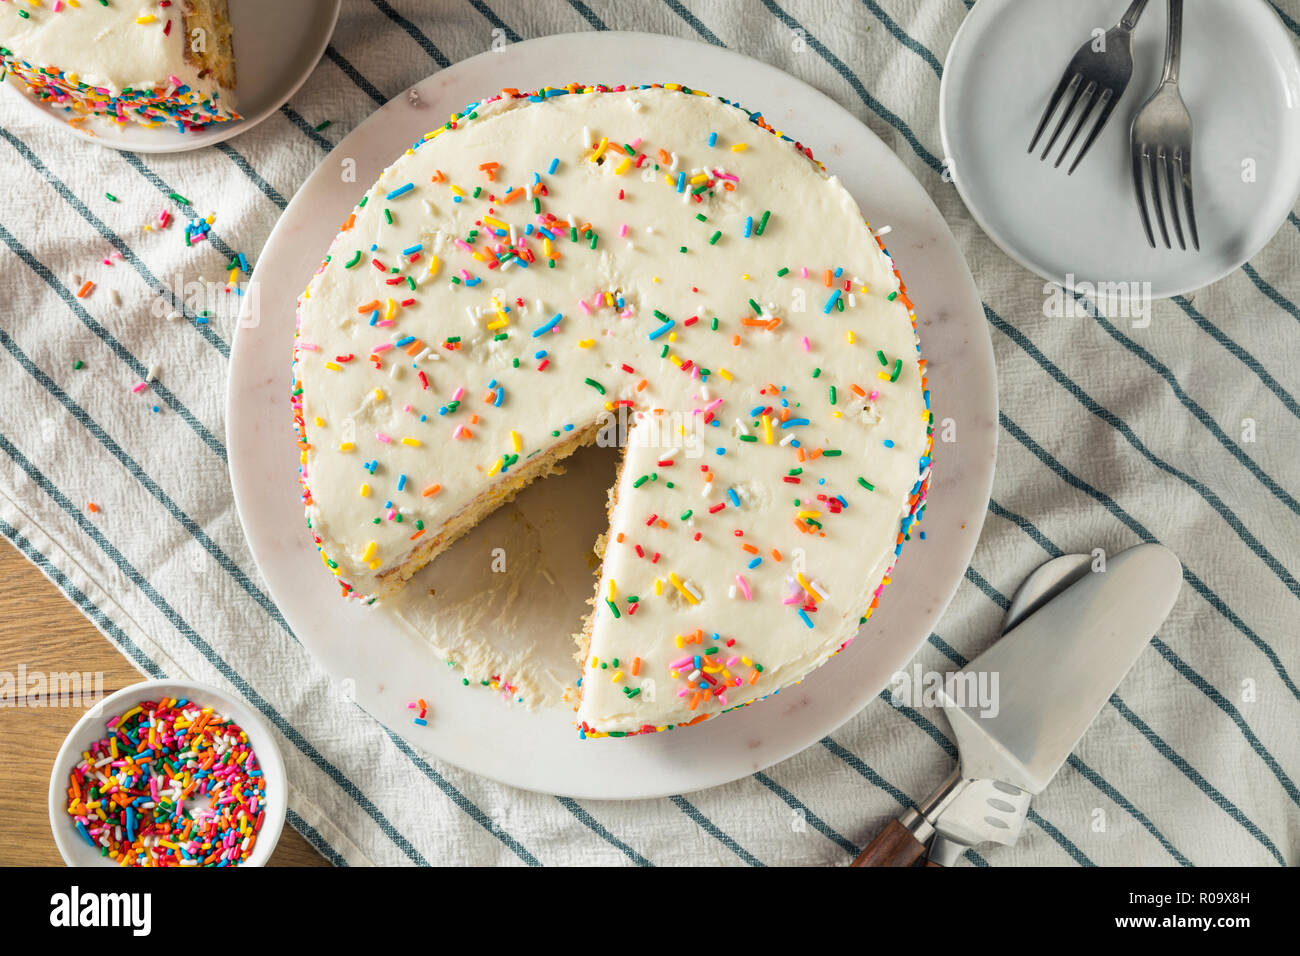 Homemade Sweet Birthday Cake with Candles Ready to Serve - Stock Image